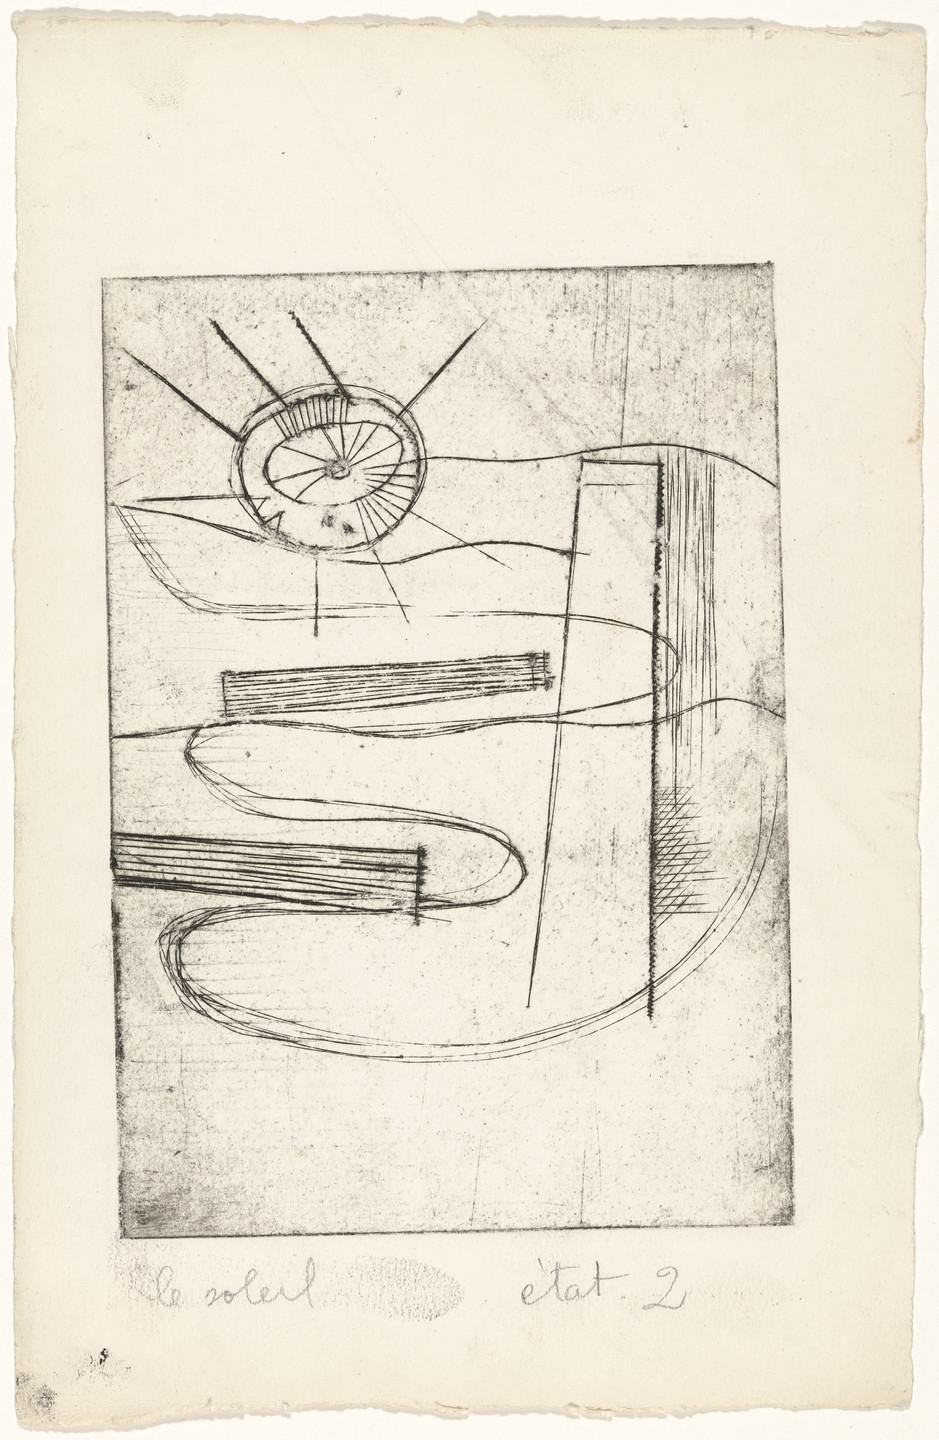 Louise Bourgeois. Le Soleil. 1947